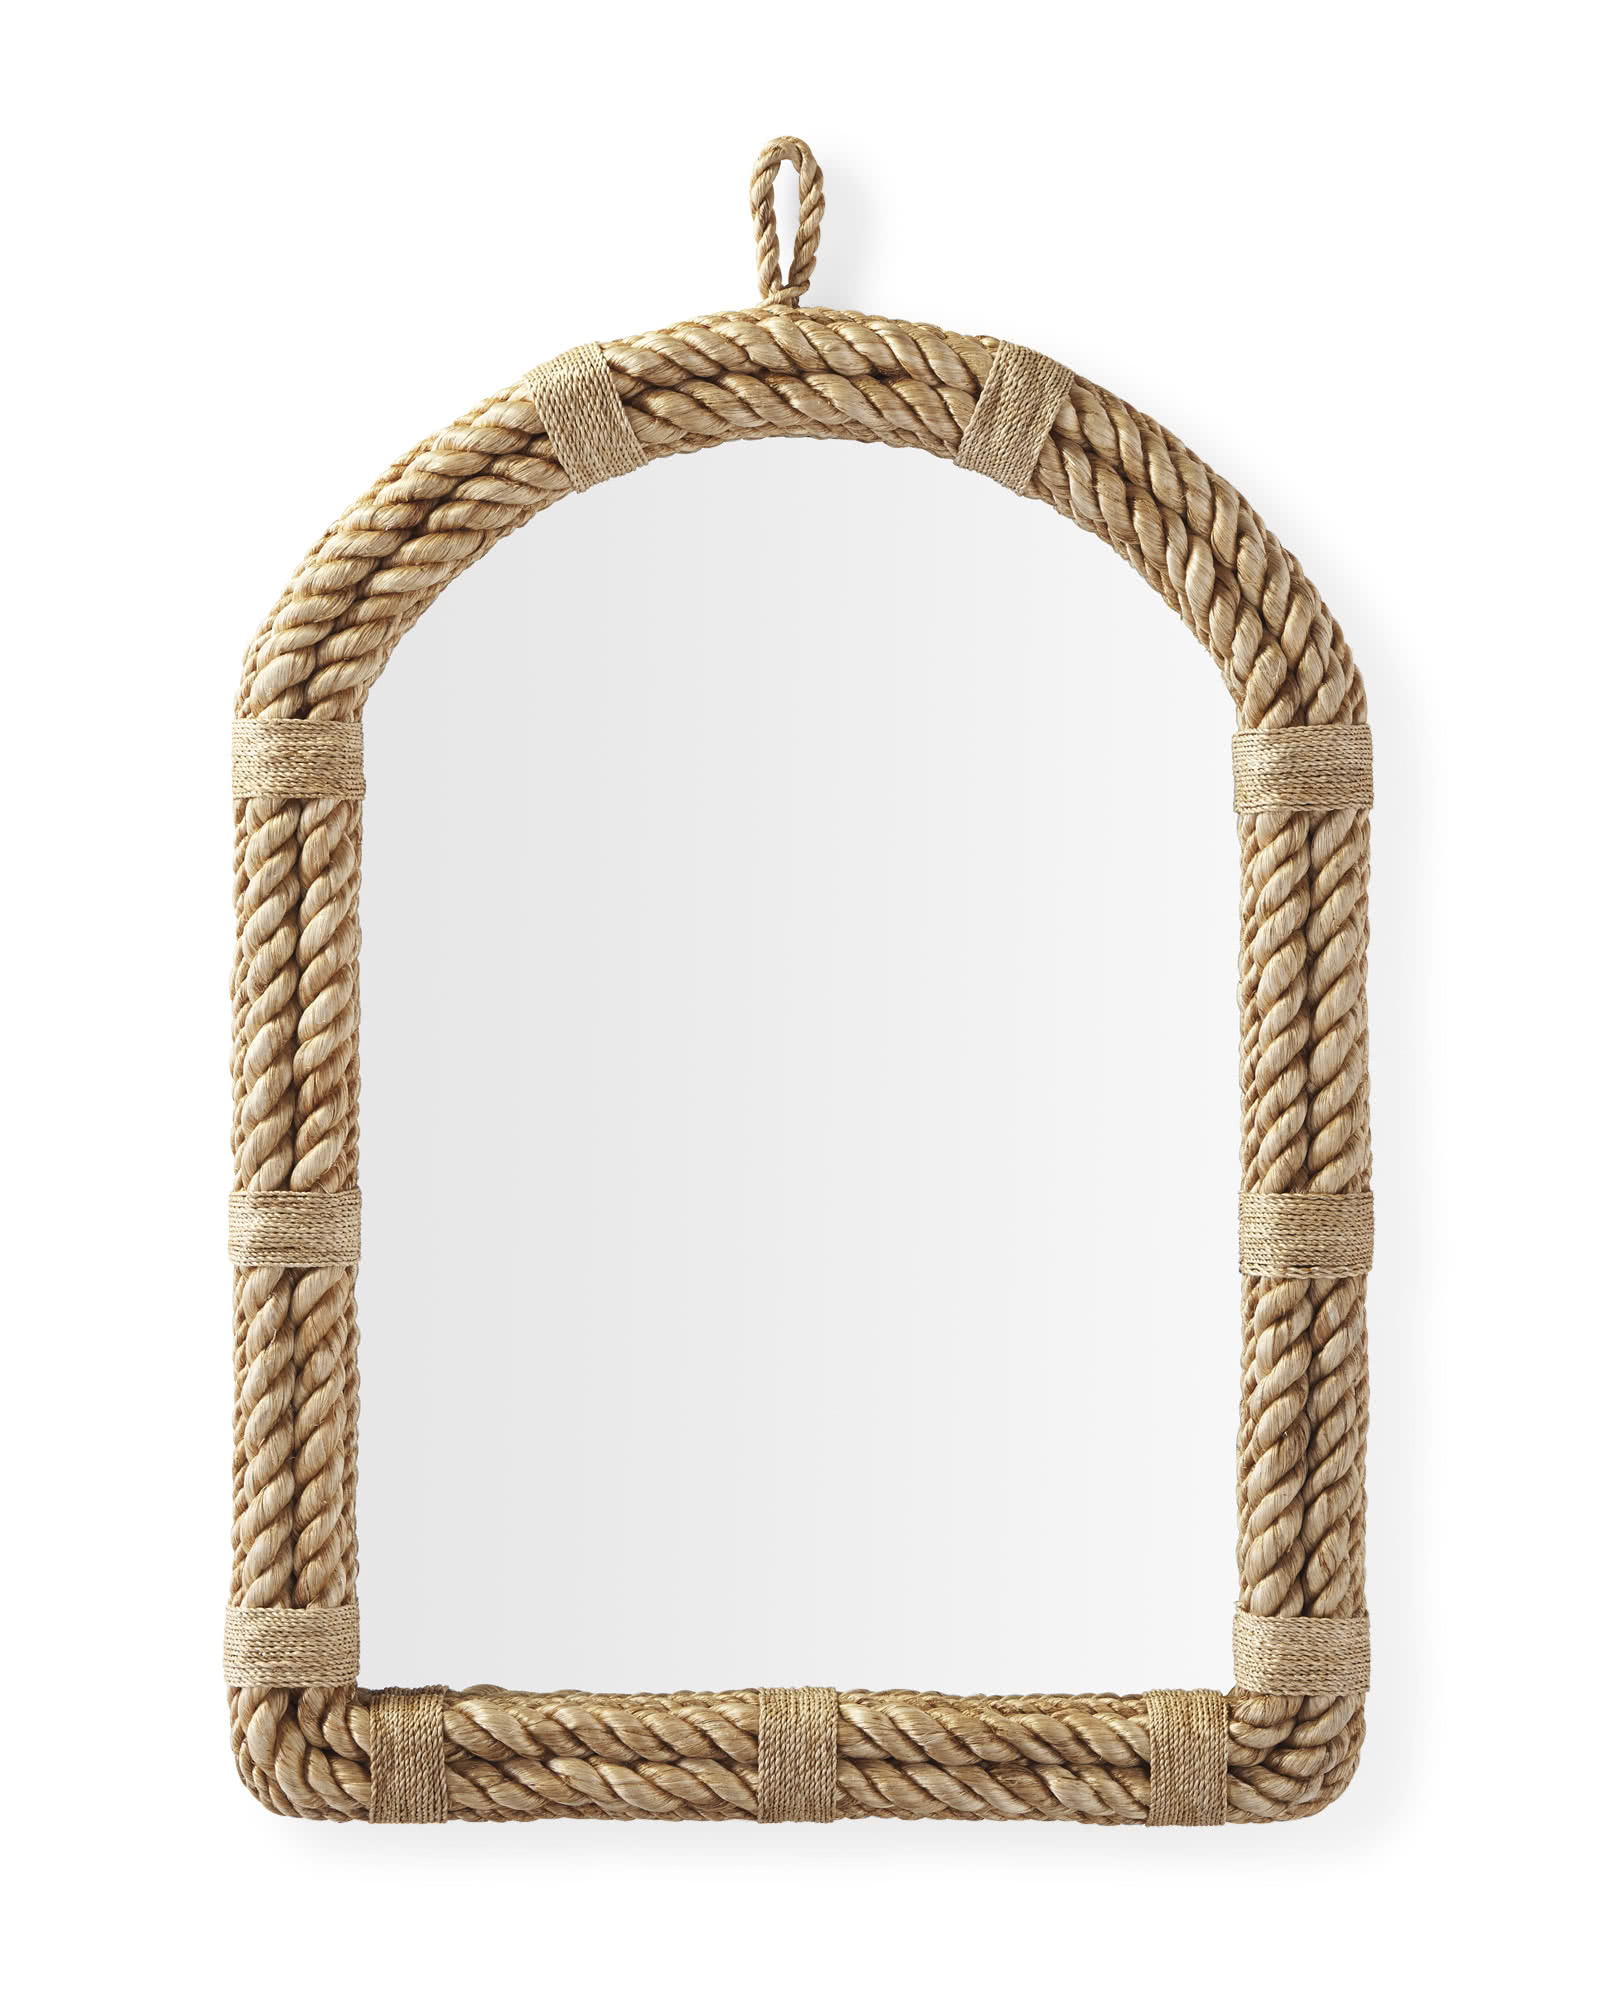 Nautical Rope Arch Mirror,